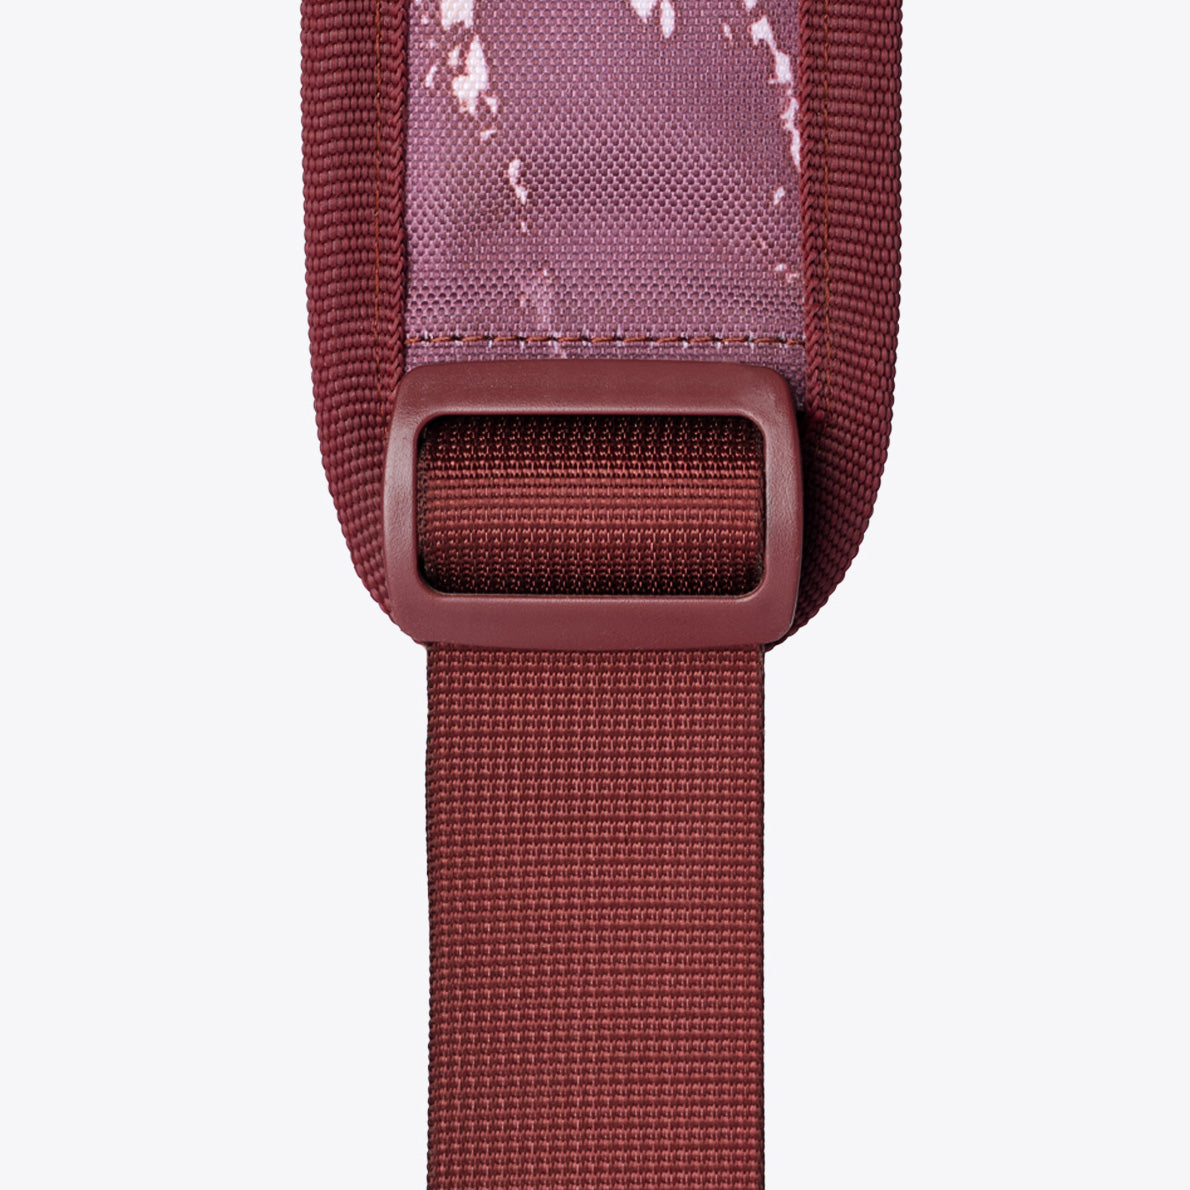 So iLL x On The Roam 25L shoulder strap webbing close up image